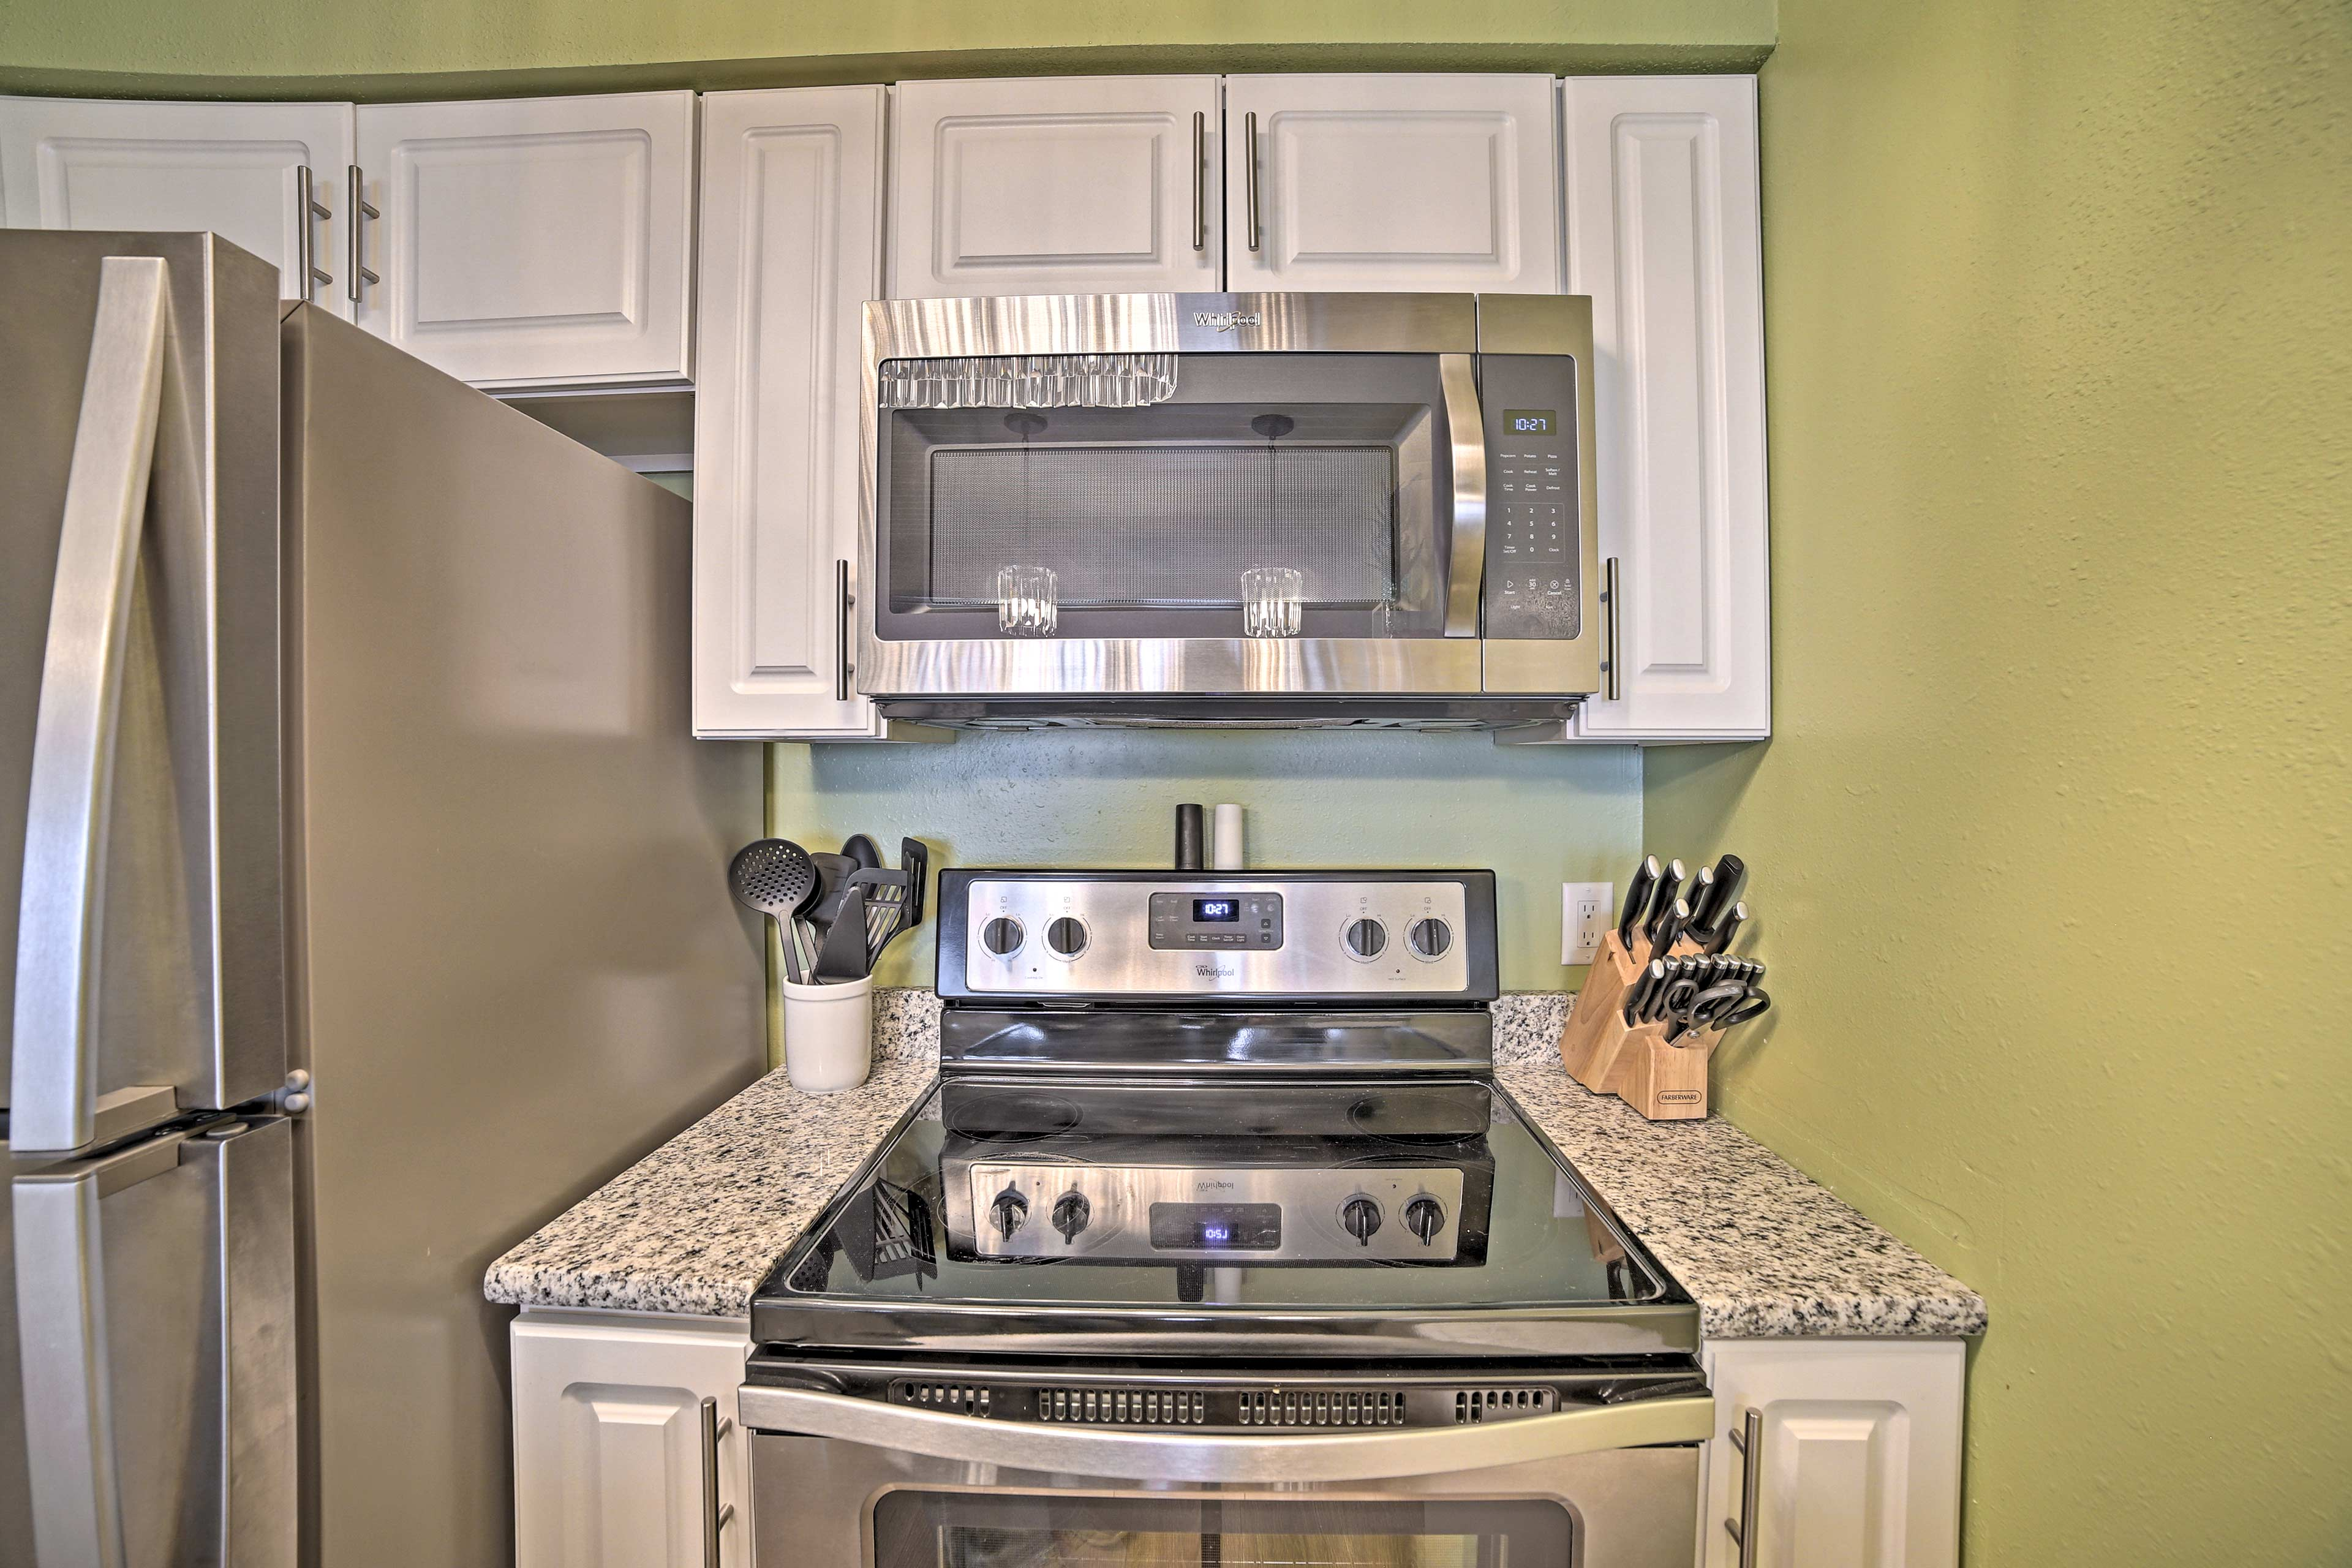 Utilize stainless steel appliances to prepare home-cooked meals.